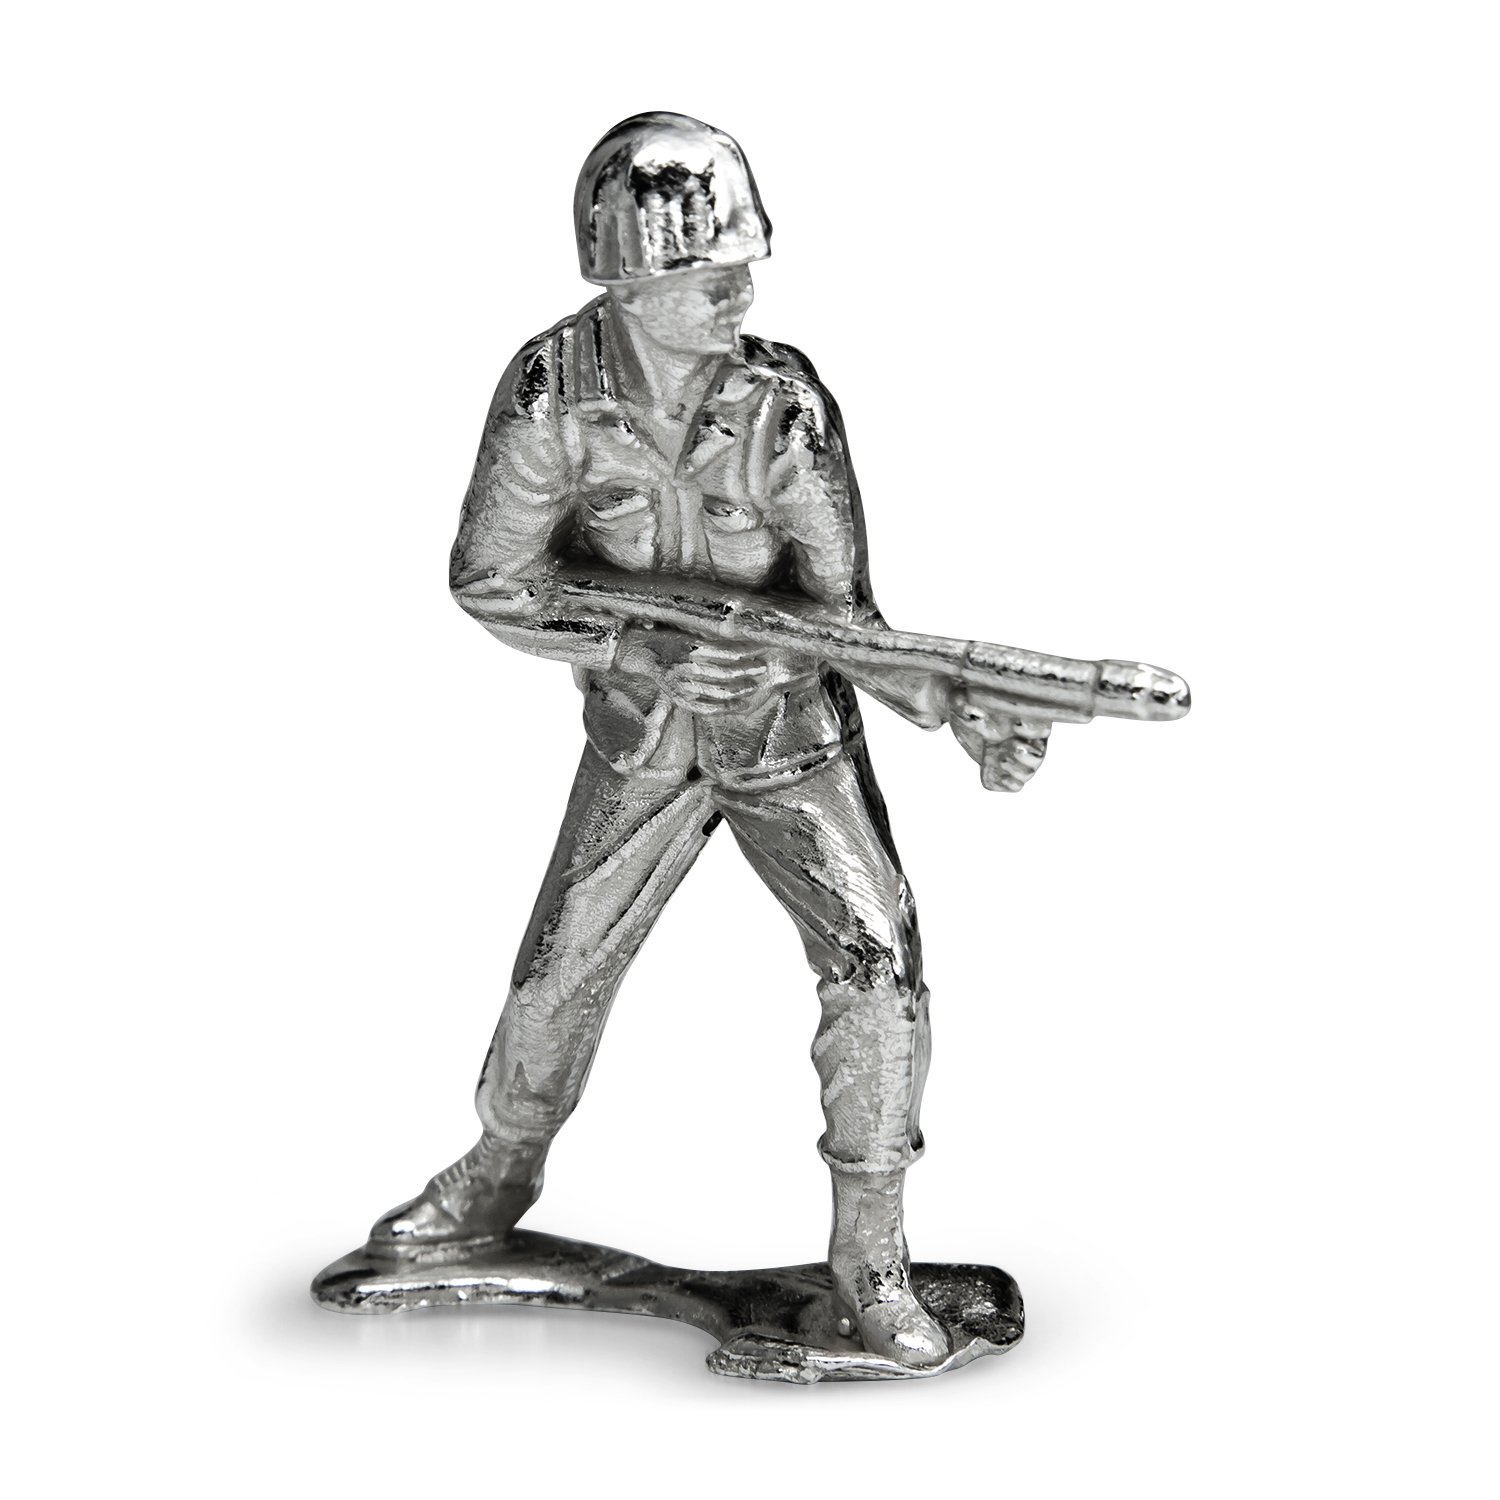 Silver Army Figurine - Flamethrower Silver Soldier